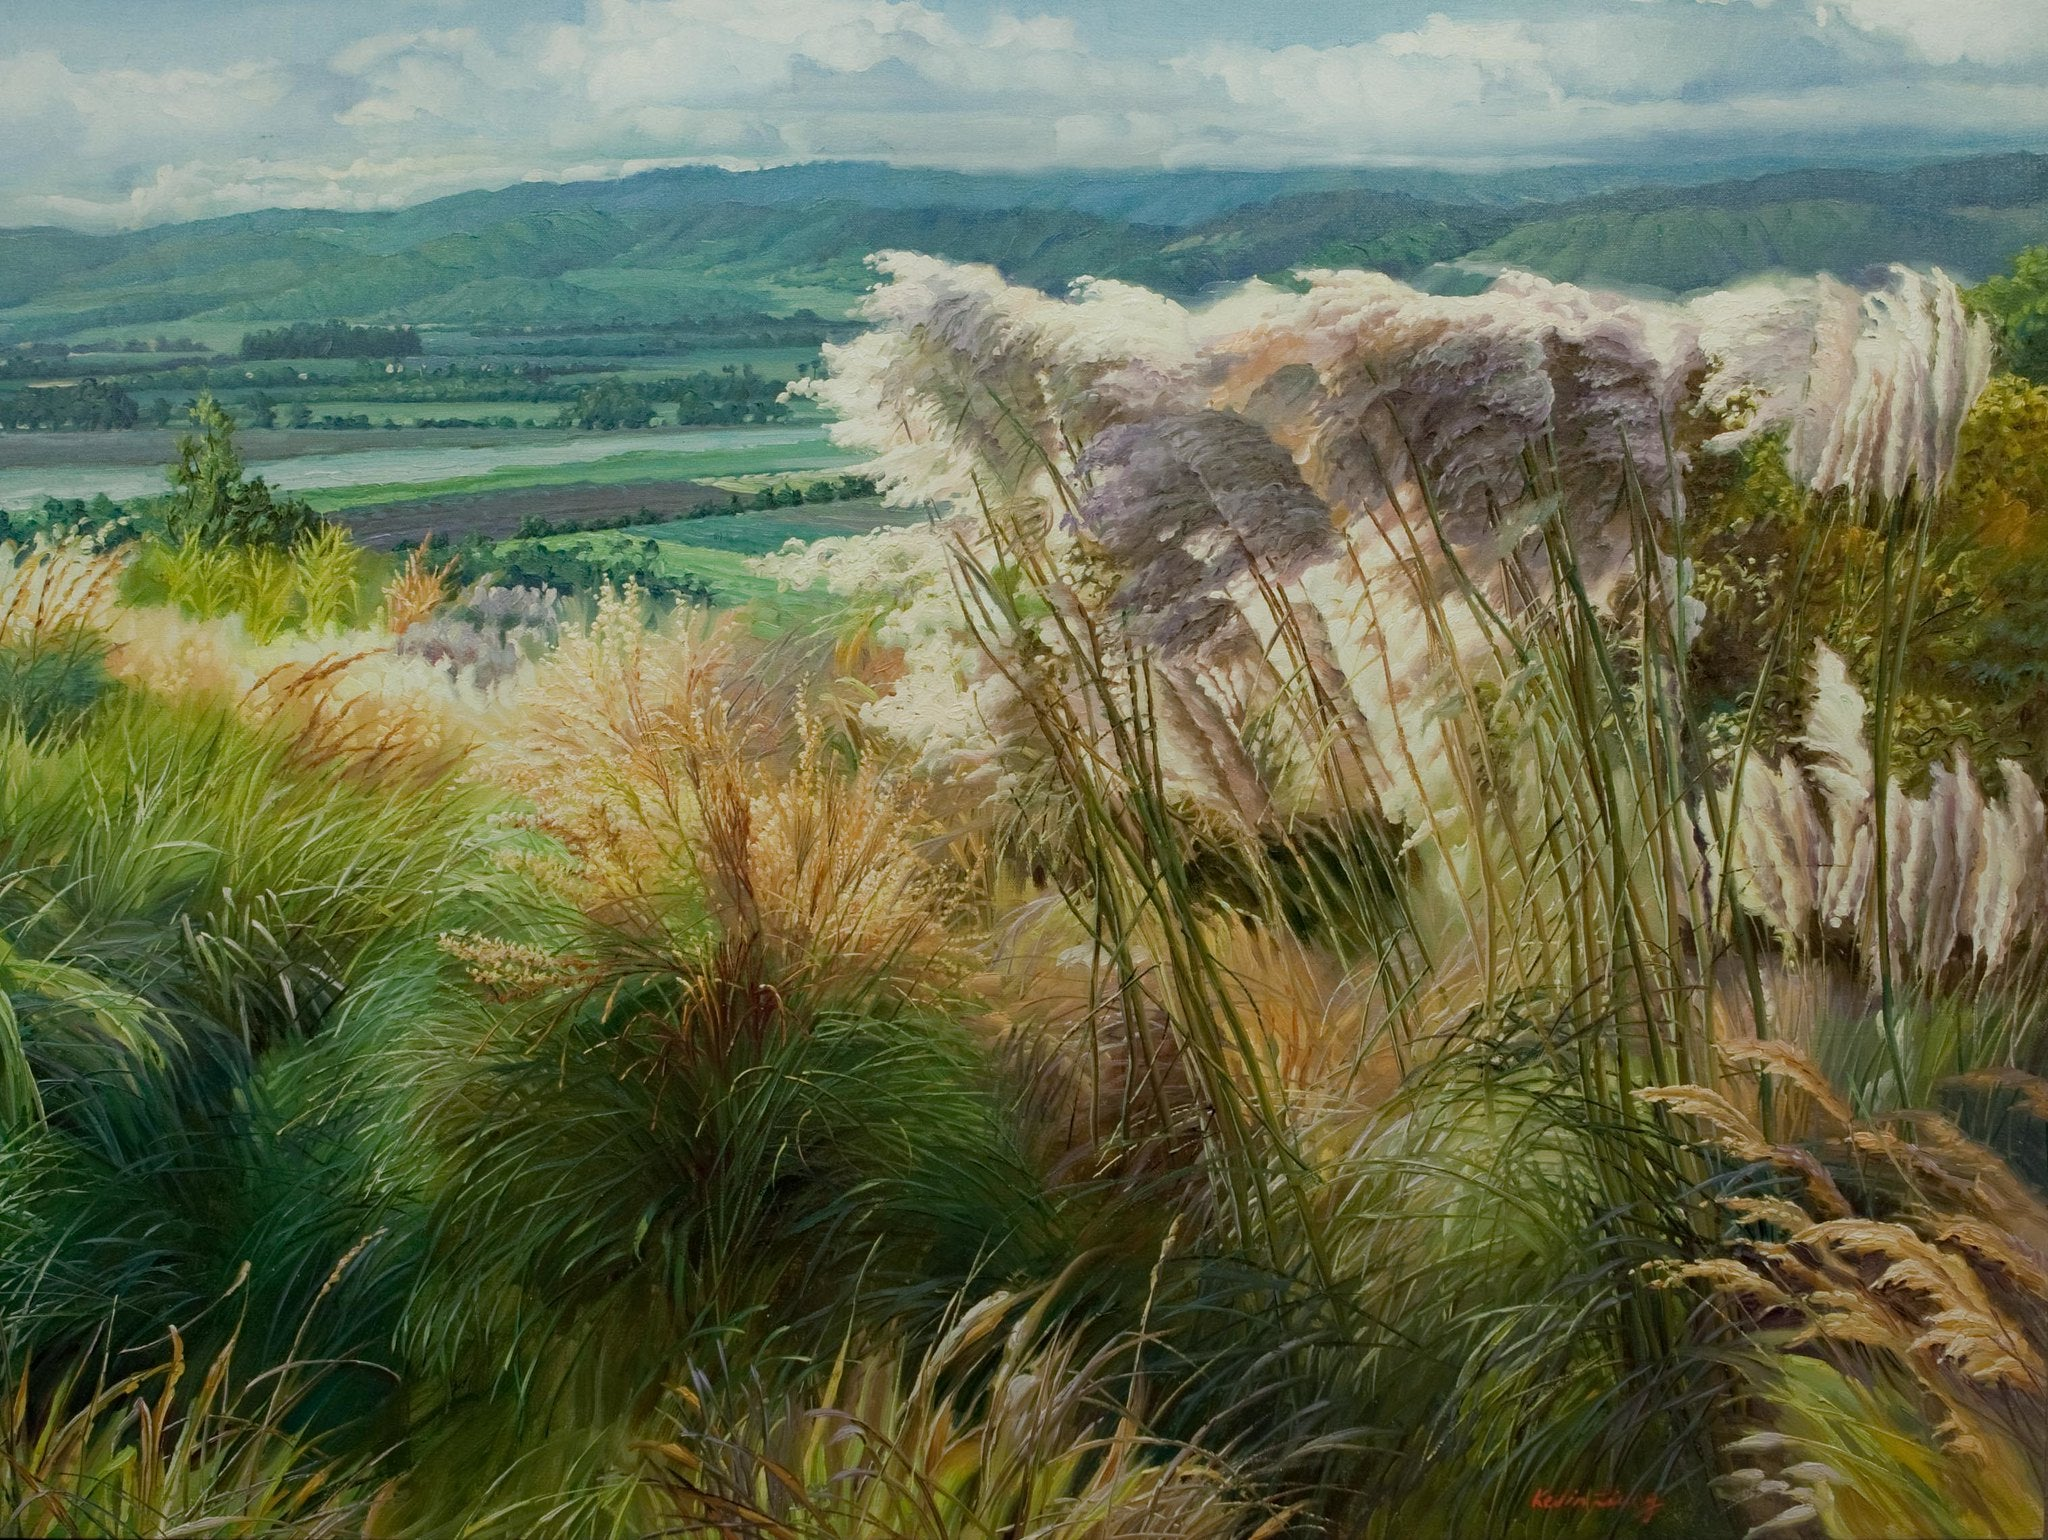 """Vista II""  Kevin Liang 2005  Original oil on canvas with frame 36"" x 46""."